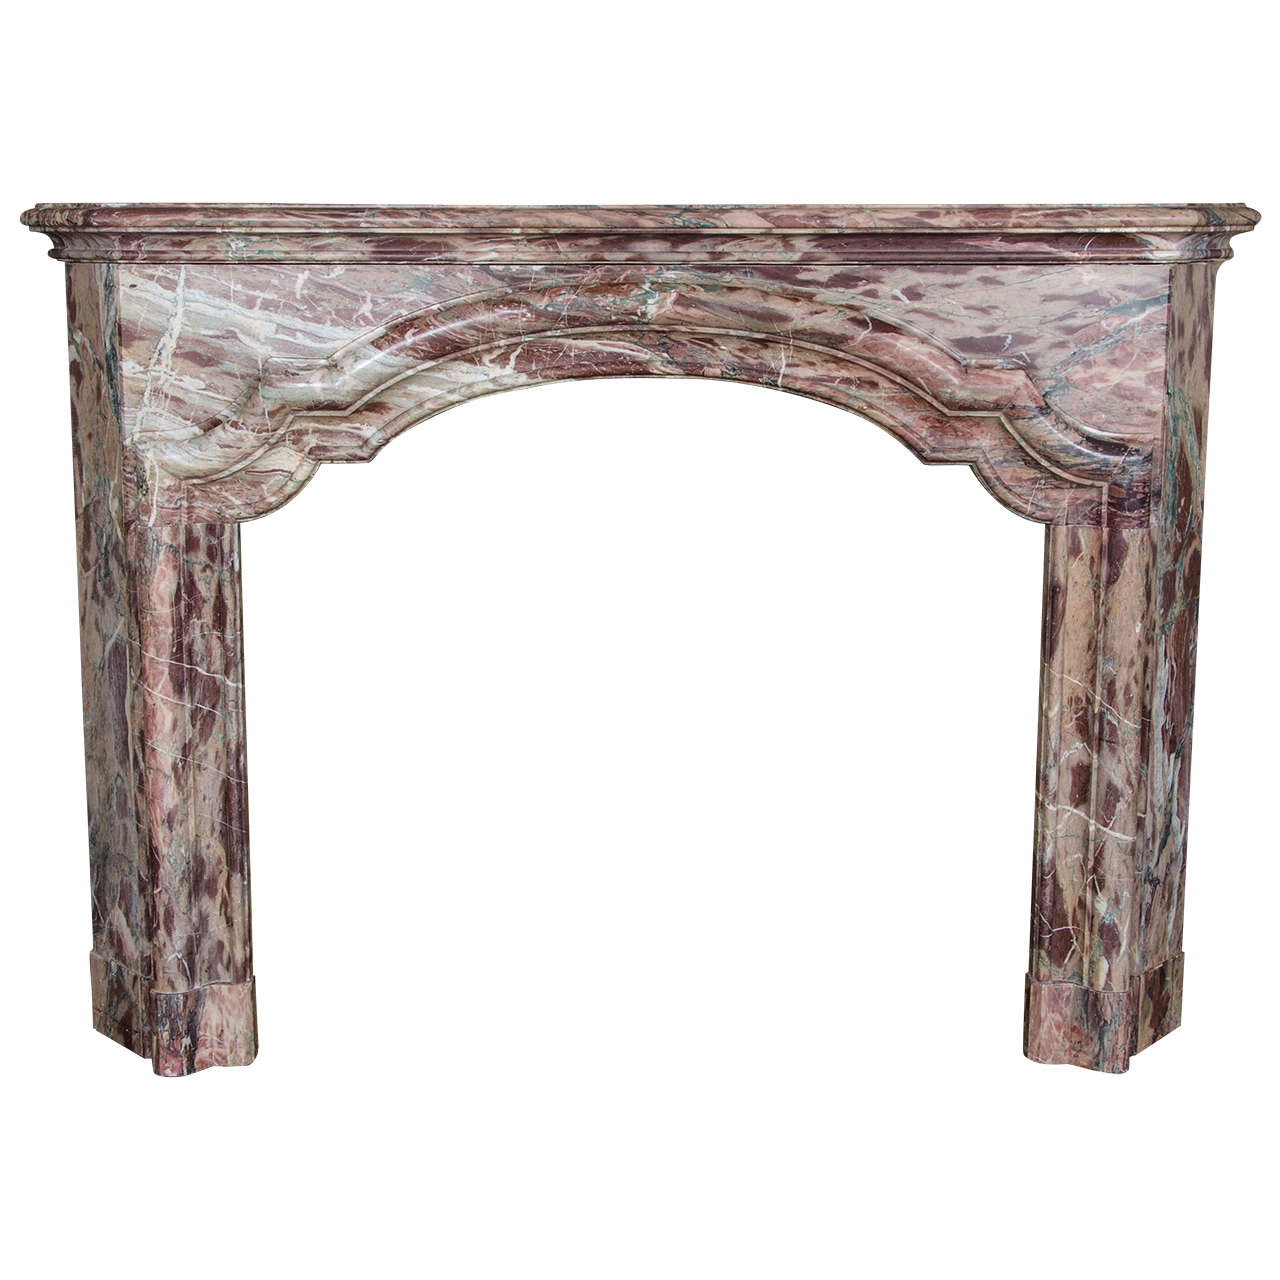 antique french sarancolin marble fireplace surround at 1stdibs. Black Bedroom Furniture Sets. Home Design Ideas